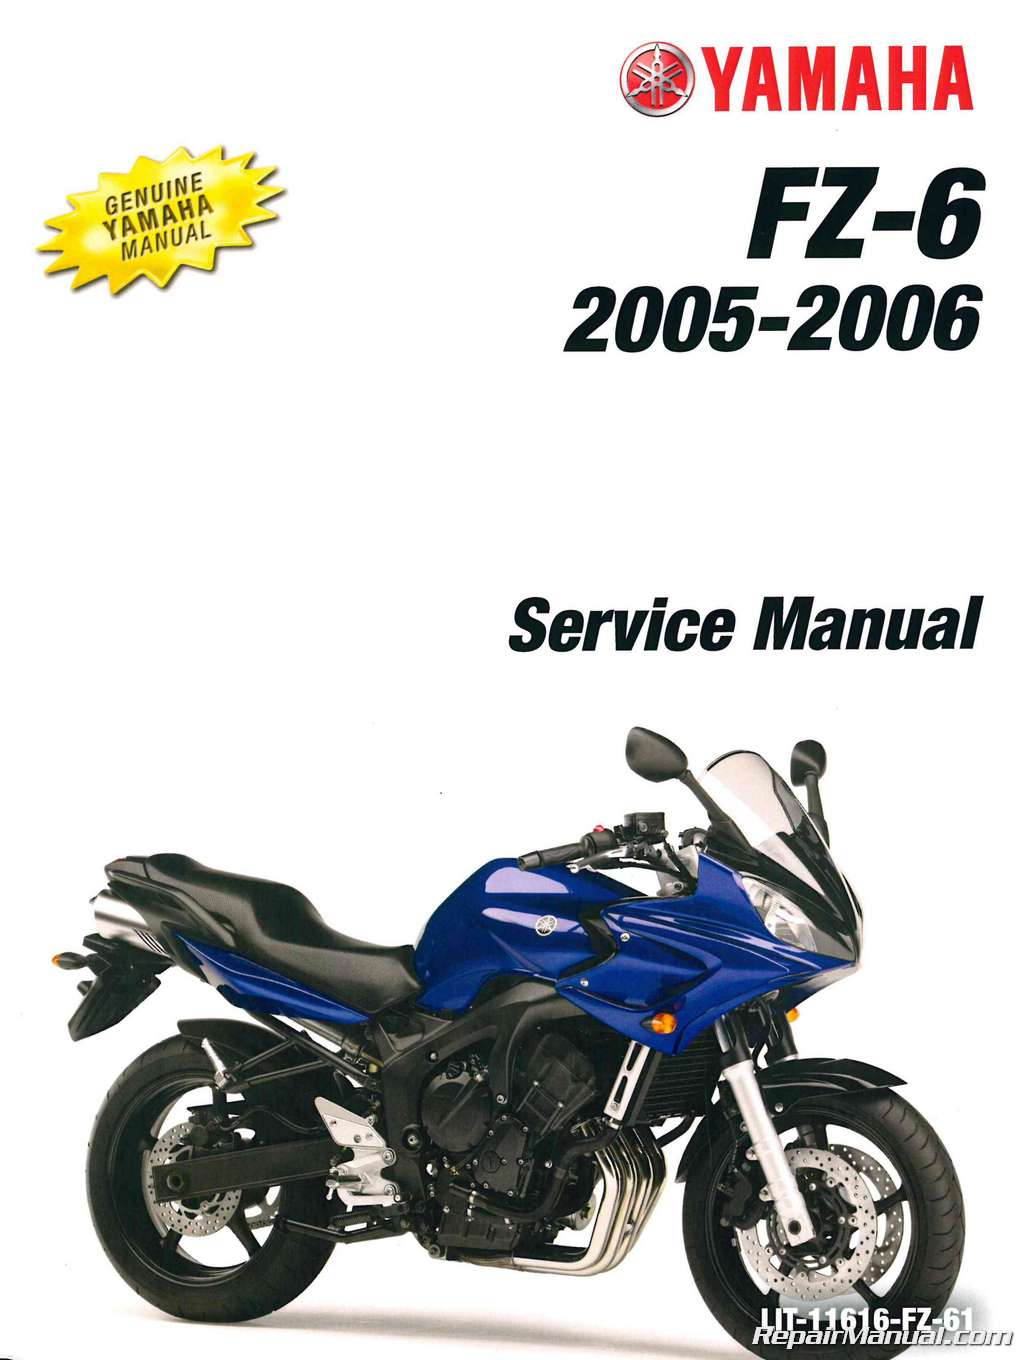 2004 2006 yamaha fz6 service manual rh repairmanual com 2005 yamaha fz6 owners manual 2005 fz6 service manual